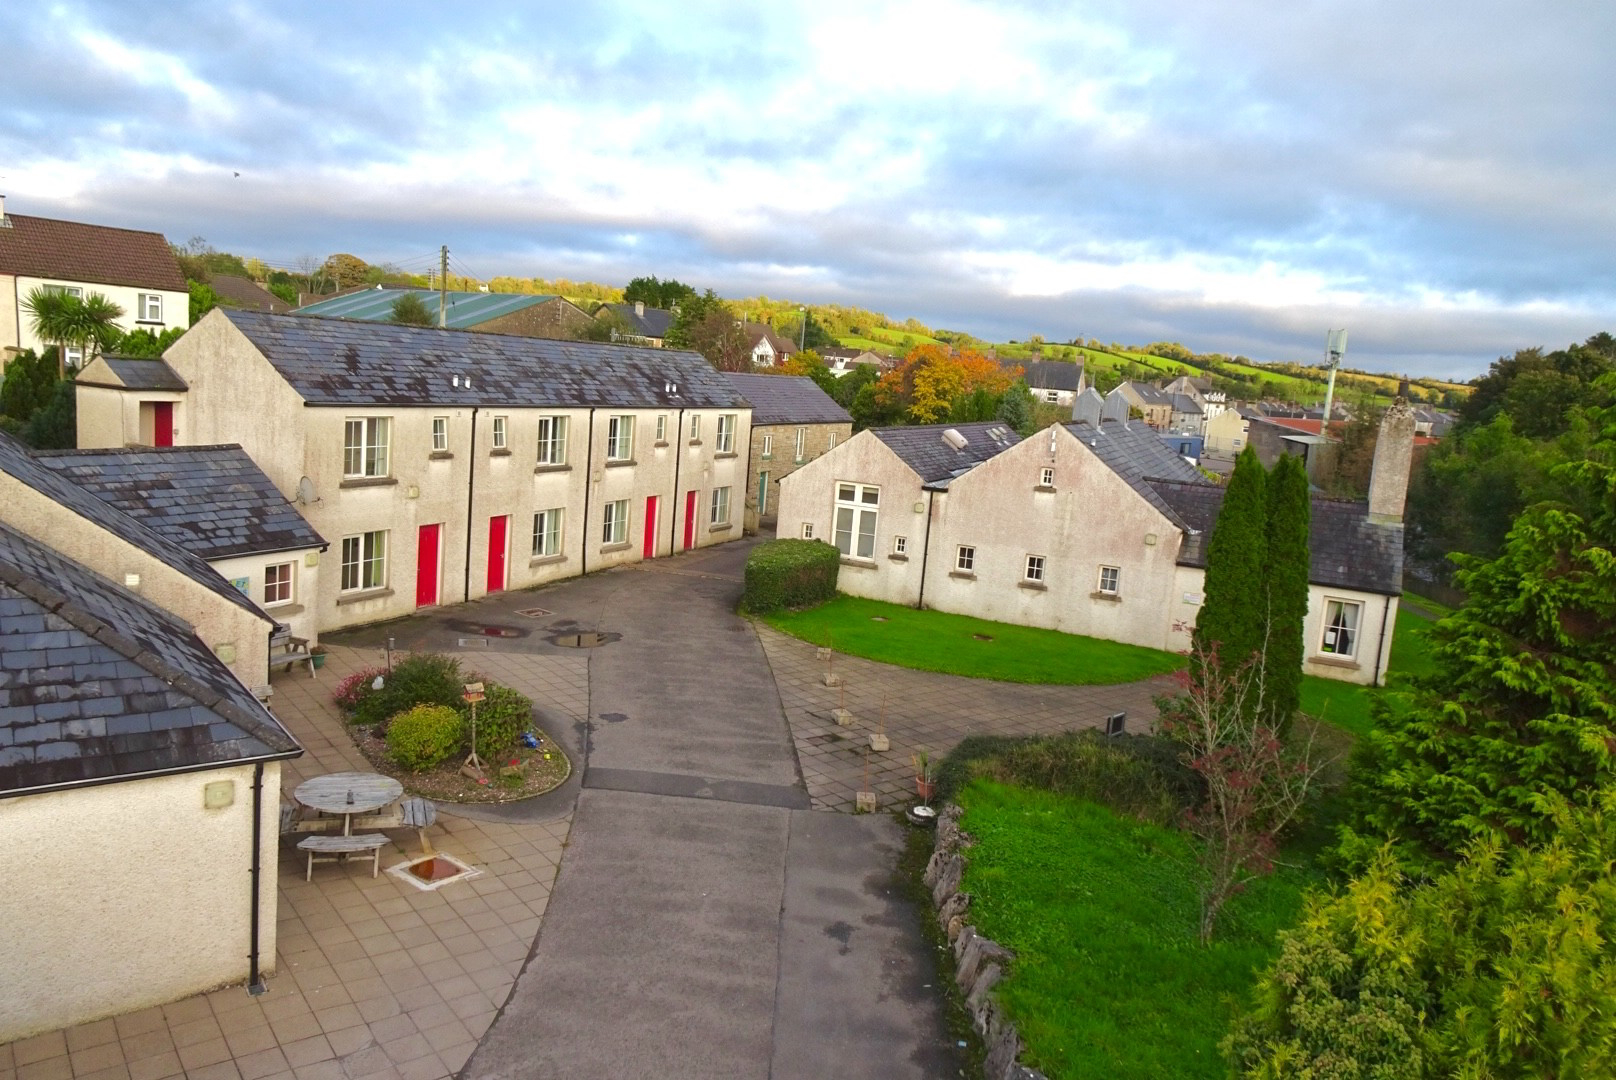 Photo 1 of The Nevar Holiday Village, 8 Main Street, Derrygonnelly